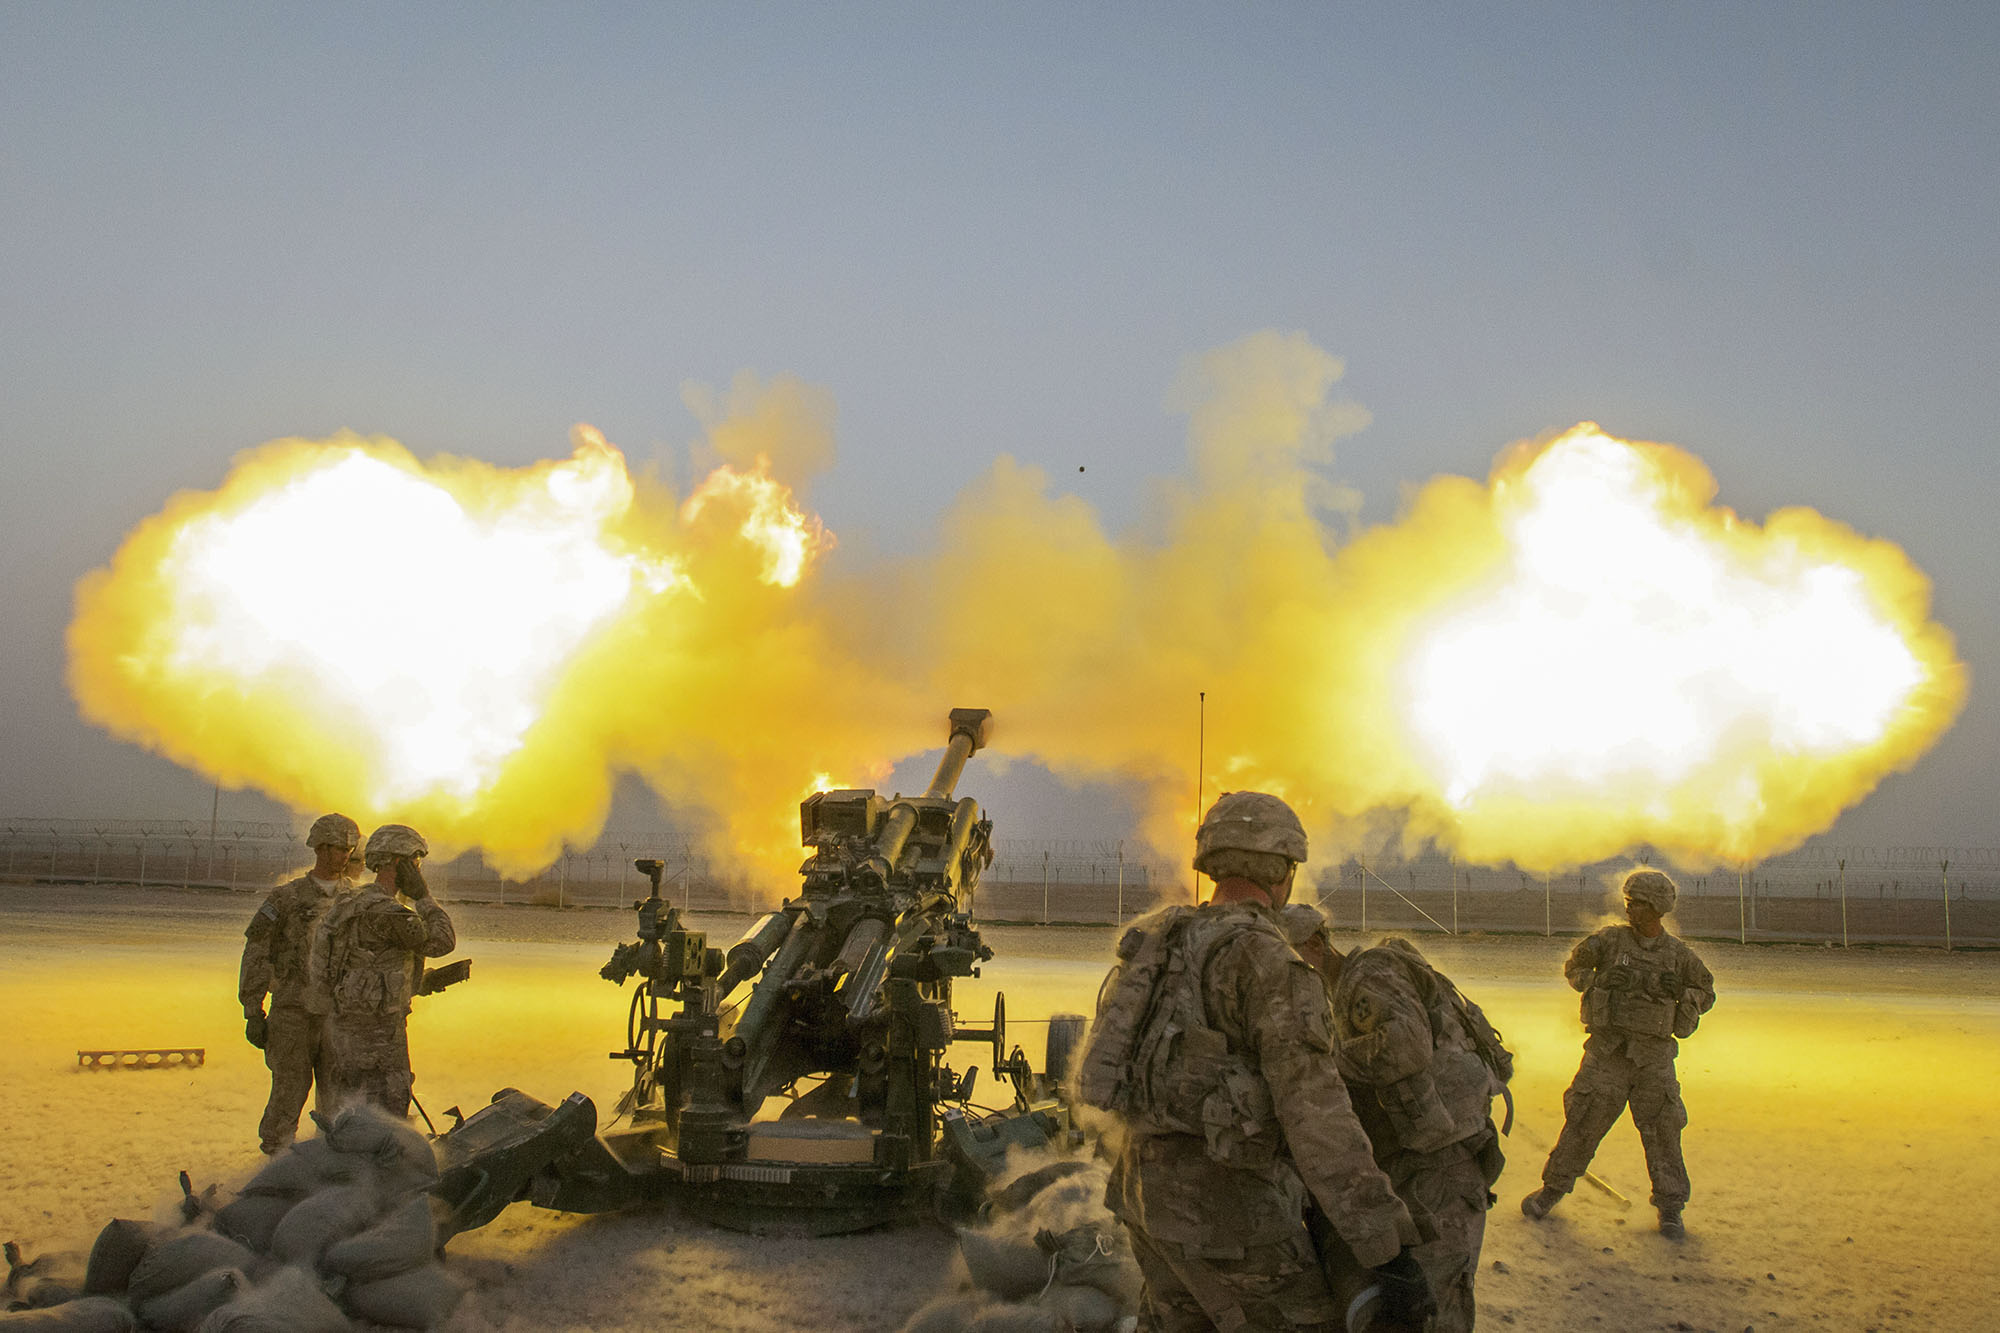 NATO Enlists UVA Health Researcher to Prevent Serious Brain Injuries in Troops